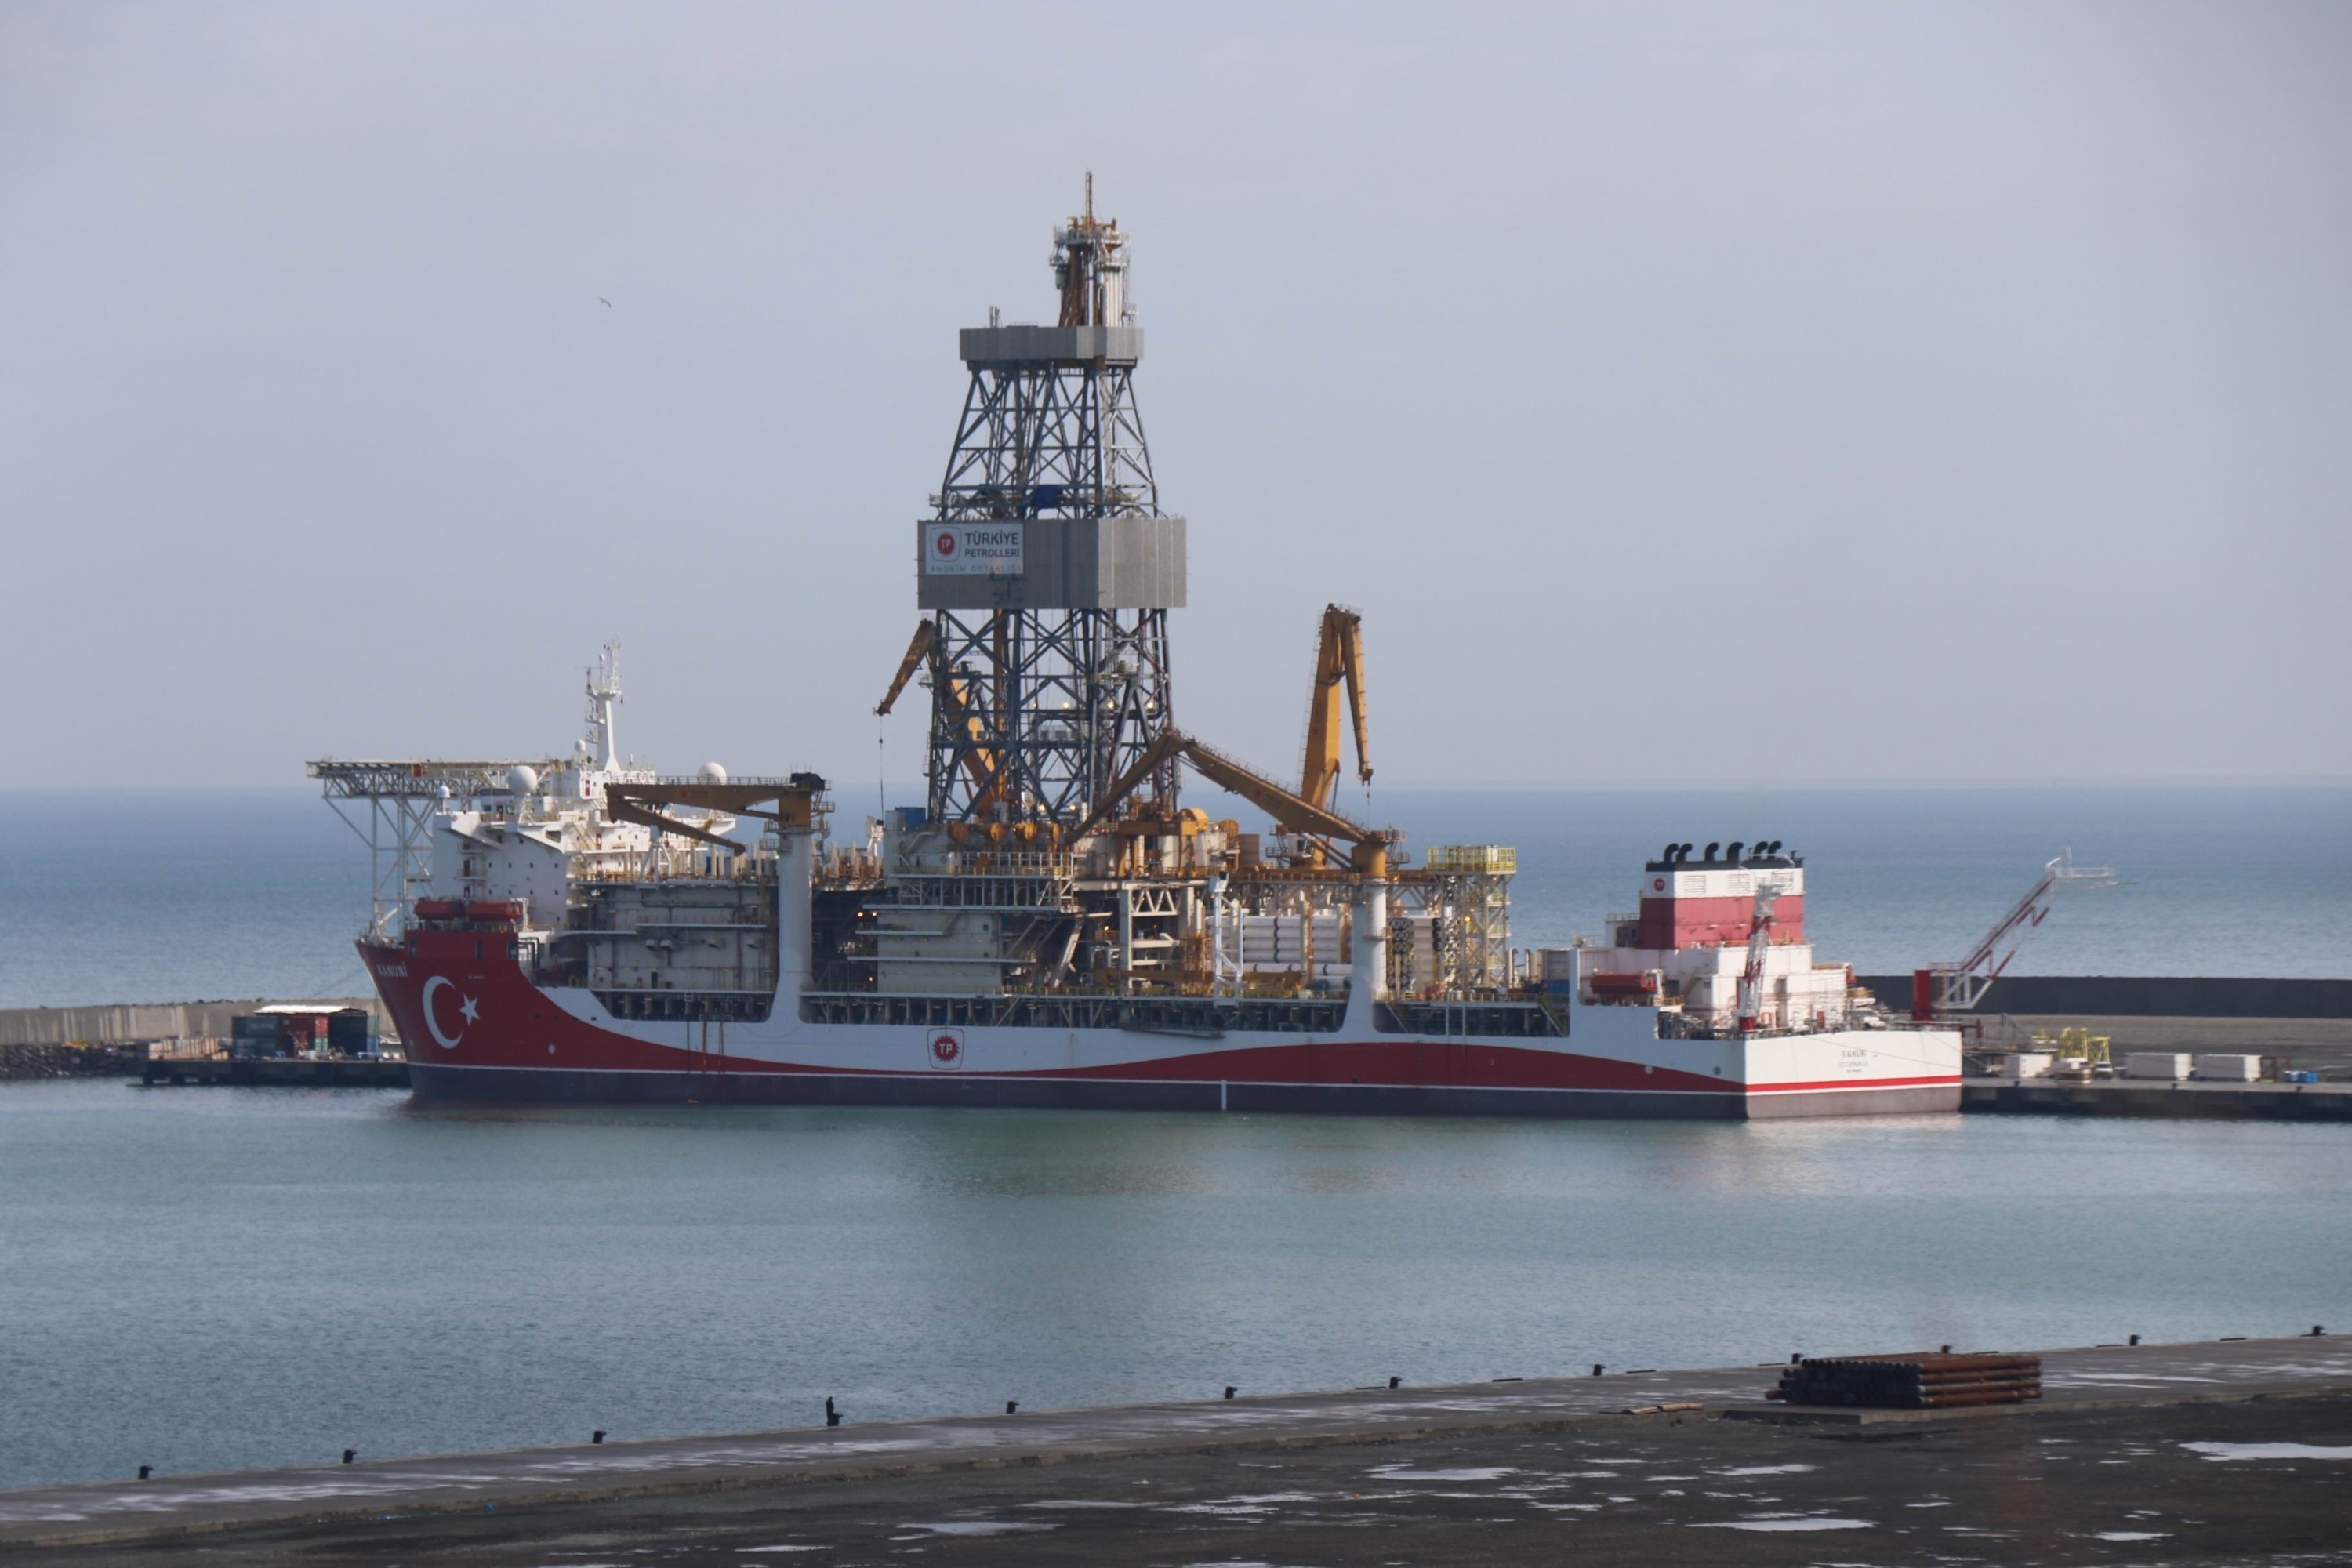 The drillship Kanuni is seen at the Port of Filyos in Zonguldak, northern Turkey, April, 6, 2021. (IHA Photo)